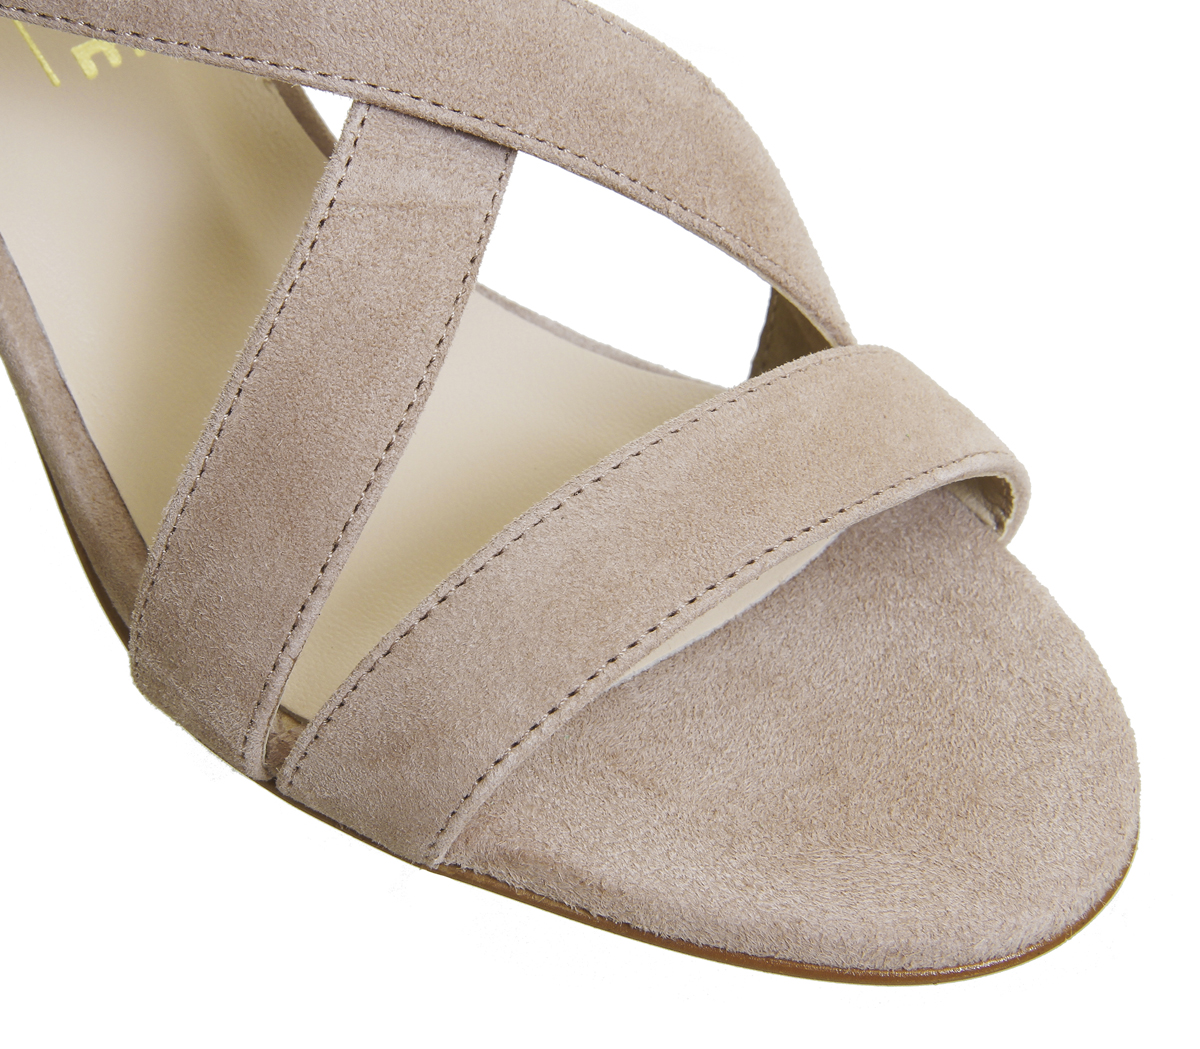 87e7edcc514c Womens OFFICE Marshmallow Block Heel Sandals Nude Kid Suede HEELS UK 7.  About this product. Picture 1 of 2  Picture 2 of 2